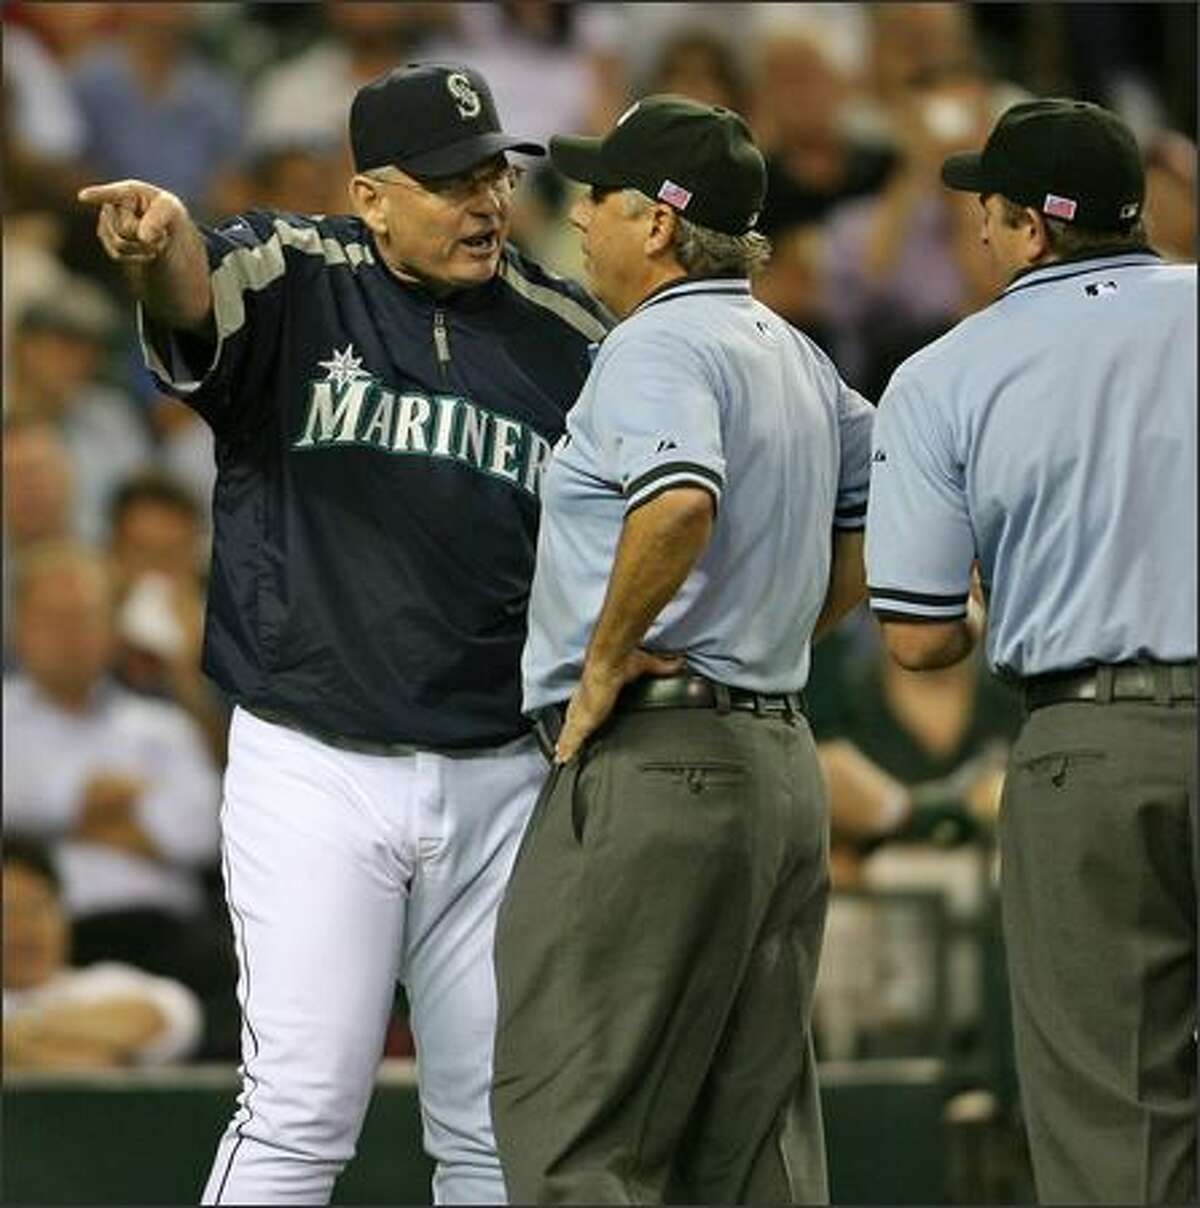 Seattle Mariners manager John McLaren argures with second base umpire and crew chief Tom Hallion after being ejected by plate umpire Chris Guccione as the M's play the Oakland Athletics during fourth inning action at Safeco Field in Seattle, Wash., Tuesday Sept. 11, 2007.